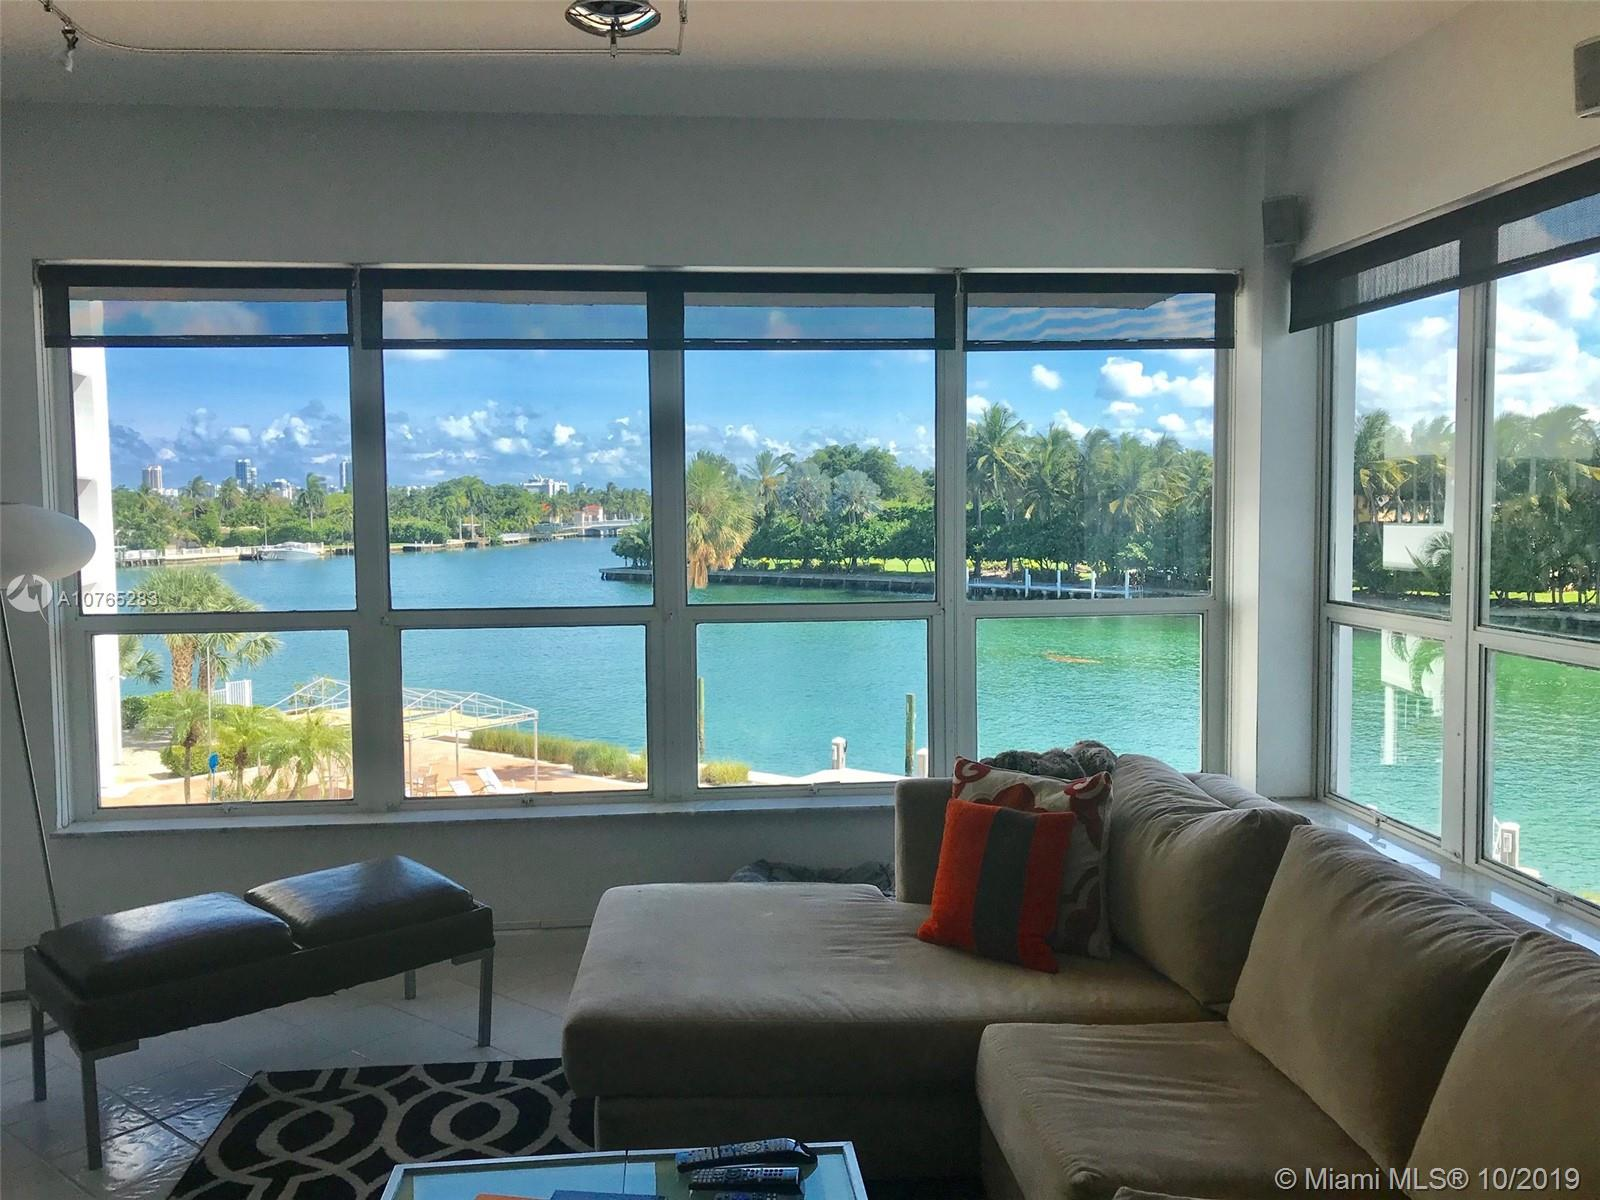 Immaculate 1 bed/den,1.5 bath, 9ft ceilings, easily converted to 2/2 completely remodeled. Generous closets custom walk-in closet . A/C included in maintenance. Blair house Iconic mid -modern century building claims the islands best waterfront location. Building has 80 units, 4 units per floor, just completed $4 M in upgrades . New lobby, halls ,waterfront gym and heated pool. Marine life  and passing yachts, kayaks ,paddle boards and extra storage .Bike path, walk to area pristine beach, Starbucks, Bal Harbour Shops and restaurants. AK-8 public schools houses of Worship.No fixed bridge. Small pet up to 20 lbs. Furniture Negotiable. INVESTOR INCENTIVE. Rental allowed day of Purchase. Easy to show 9 am to 9 pm.